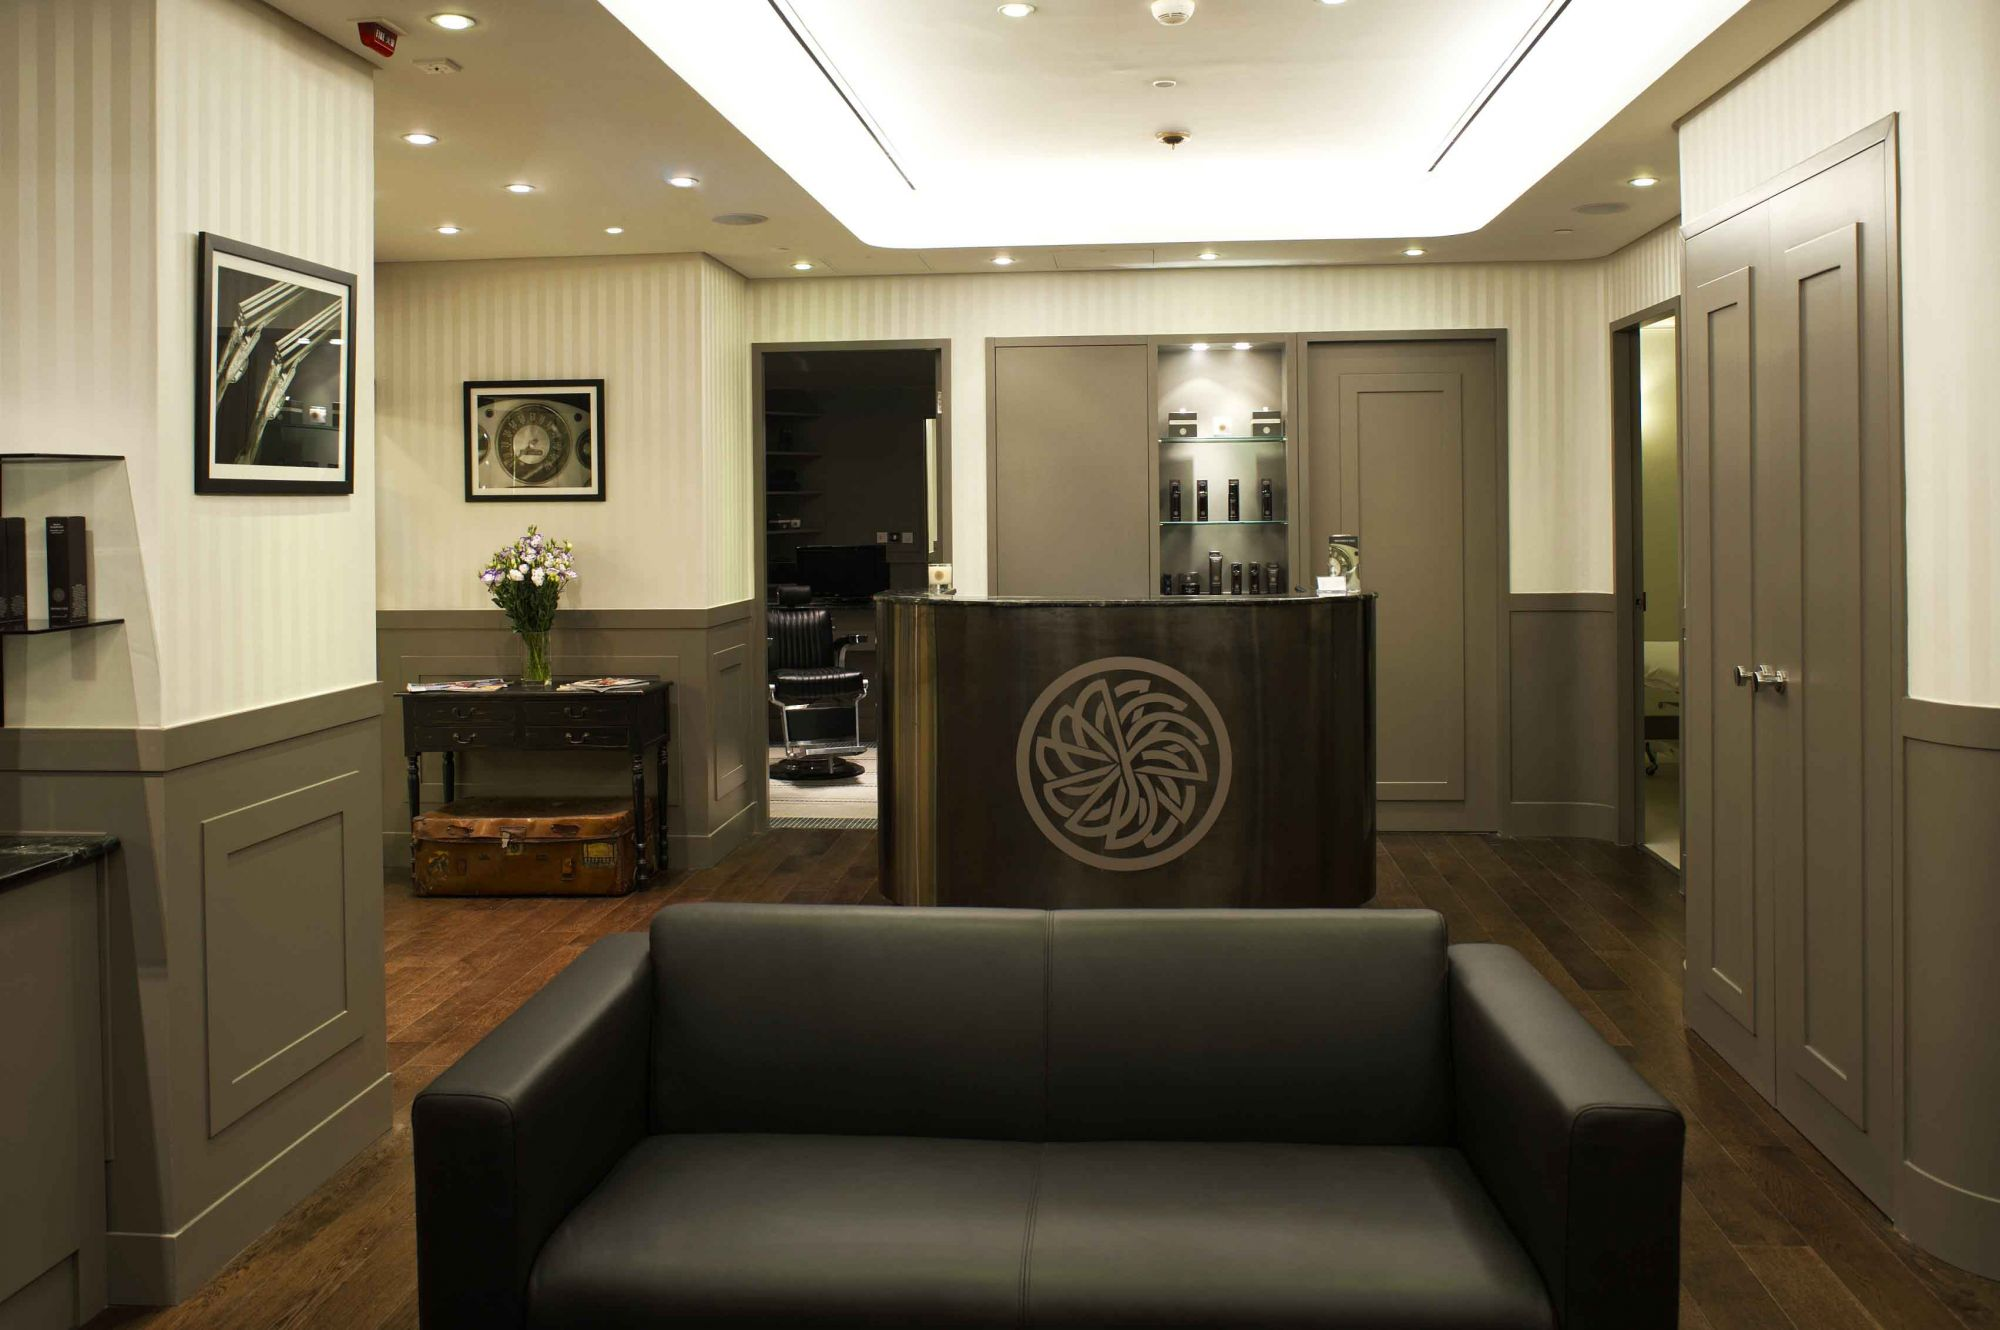 Review: A Head-to-Toe Treatment at Gentlemen's Tonic